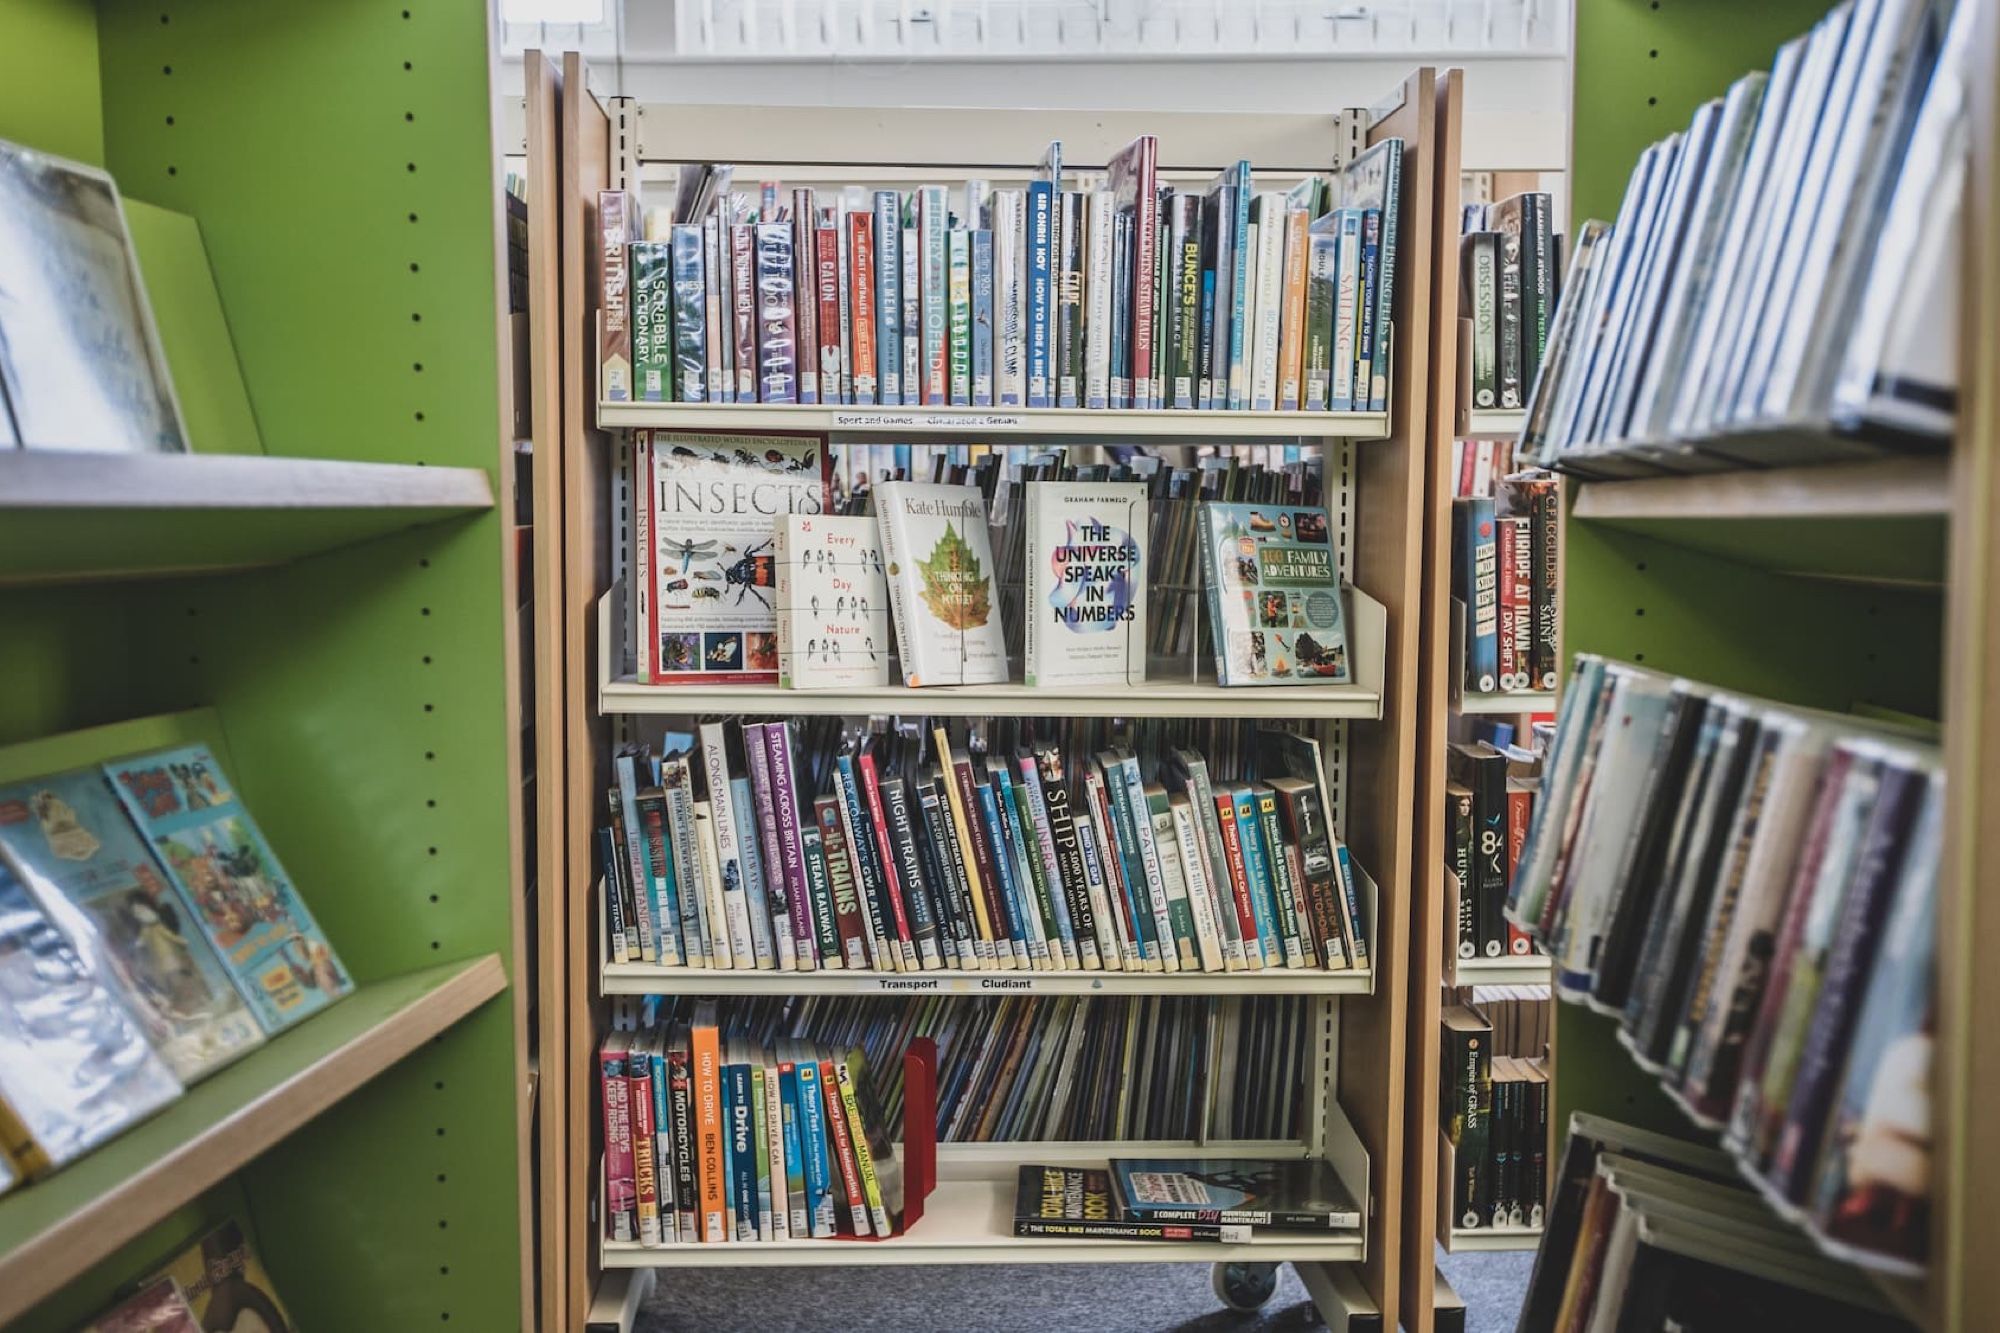 A full bookcase in the library